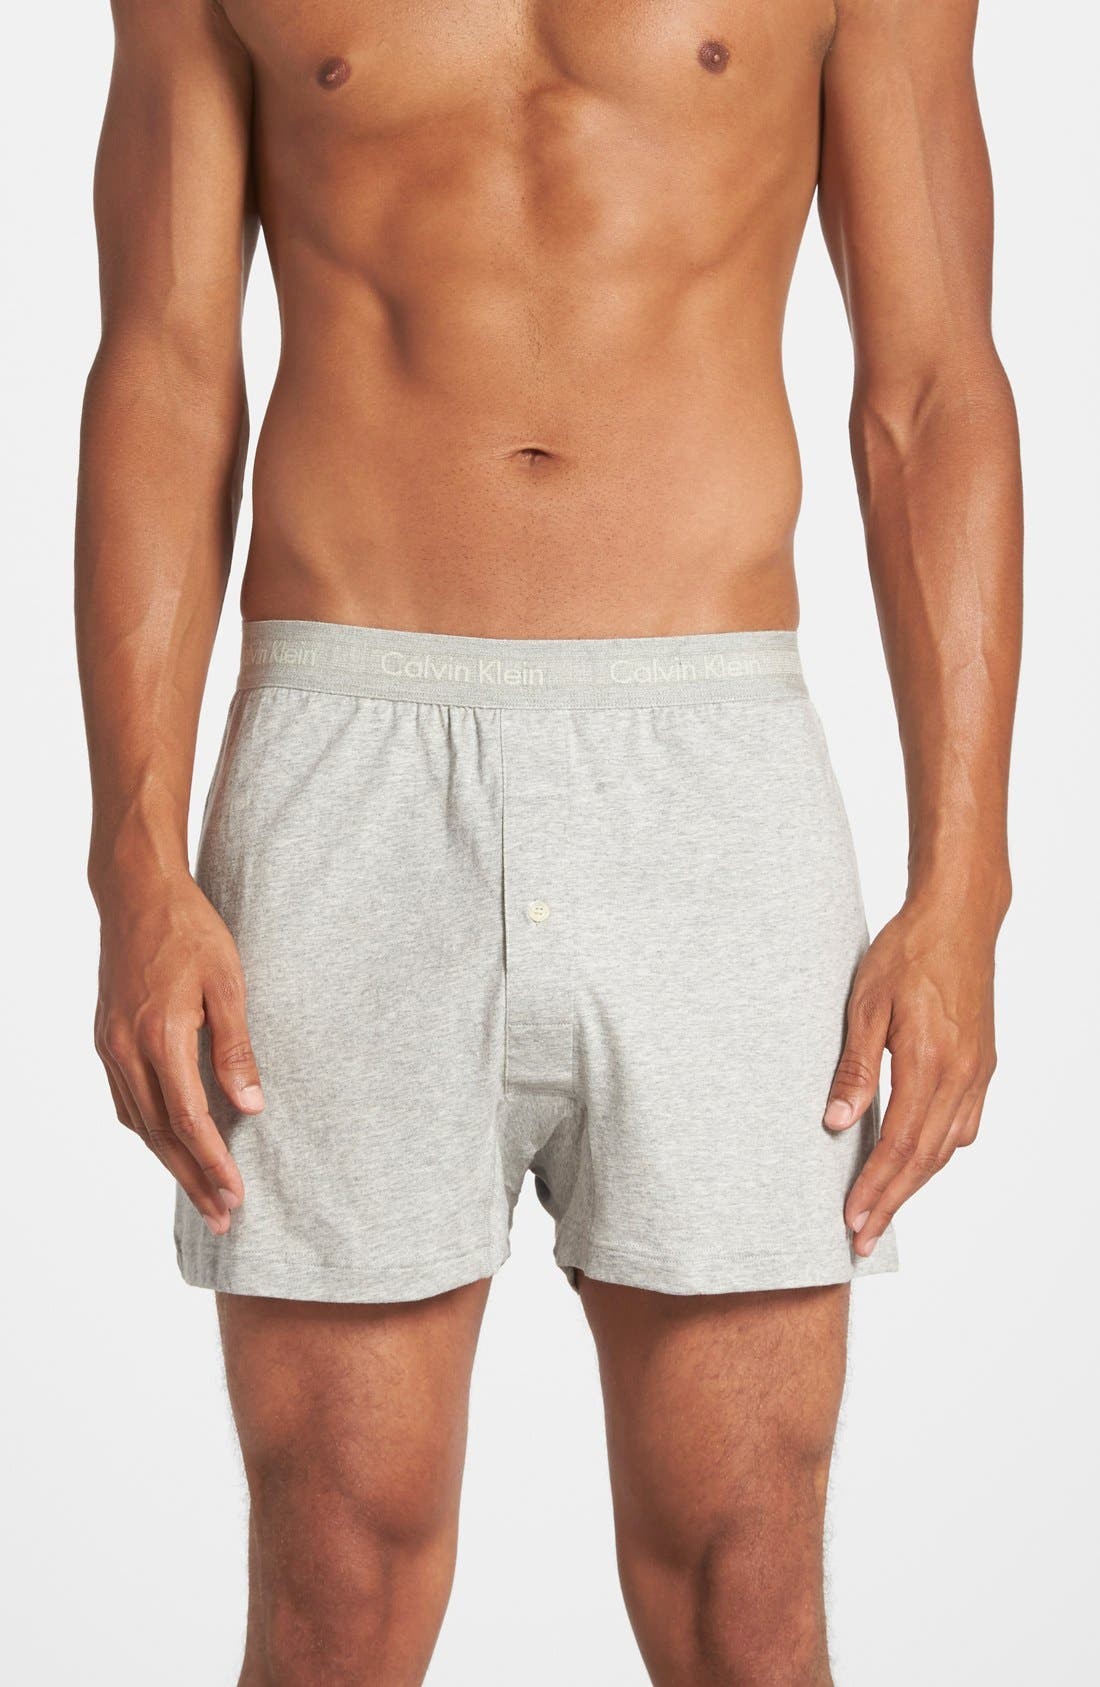 CALVIN KLEIN, 3-Pack Cotton Boxers, Alternate thumbnail 3, color, BLACK/ GREY/ WHITE